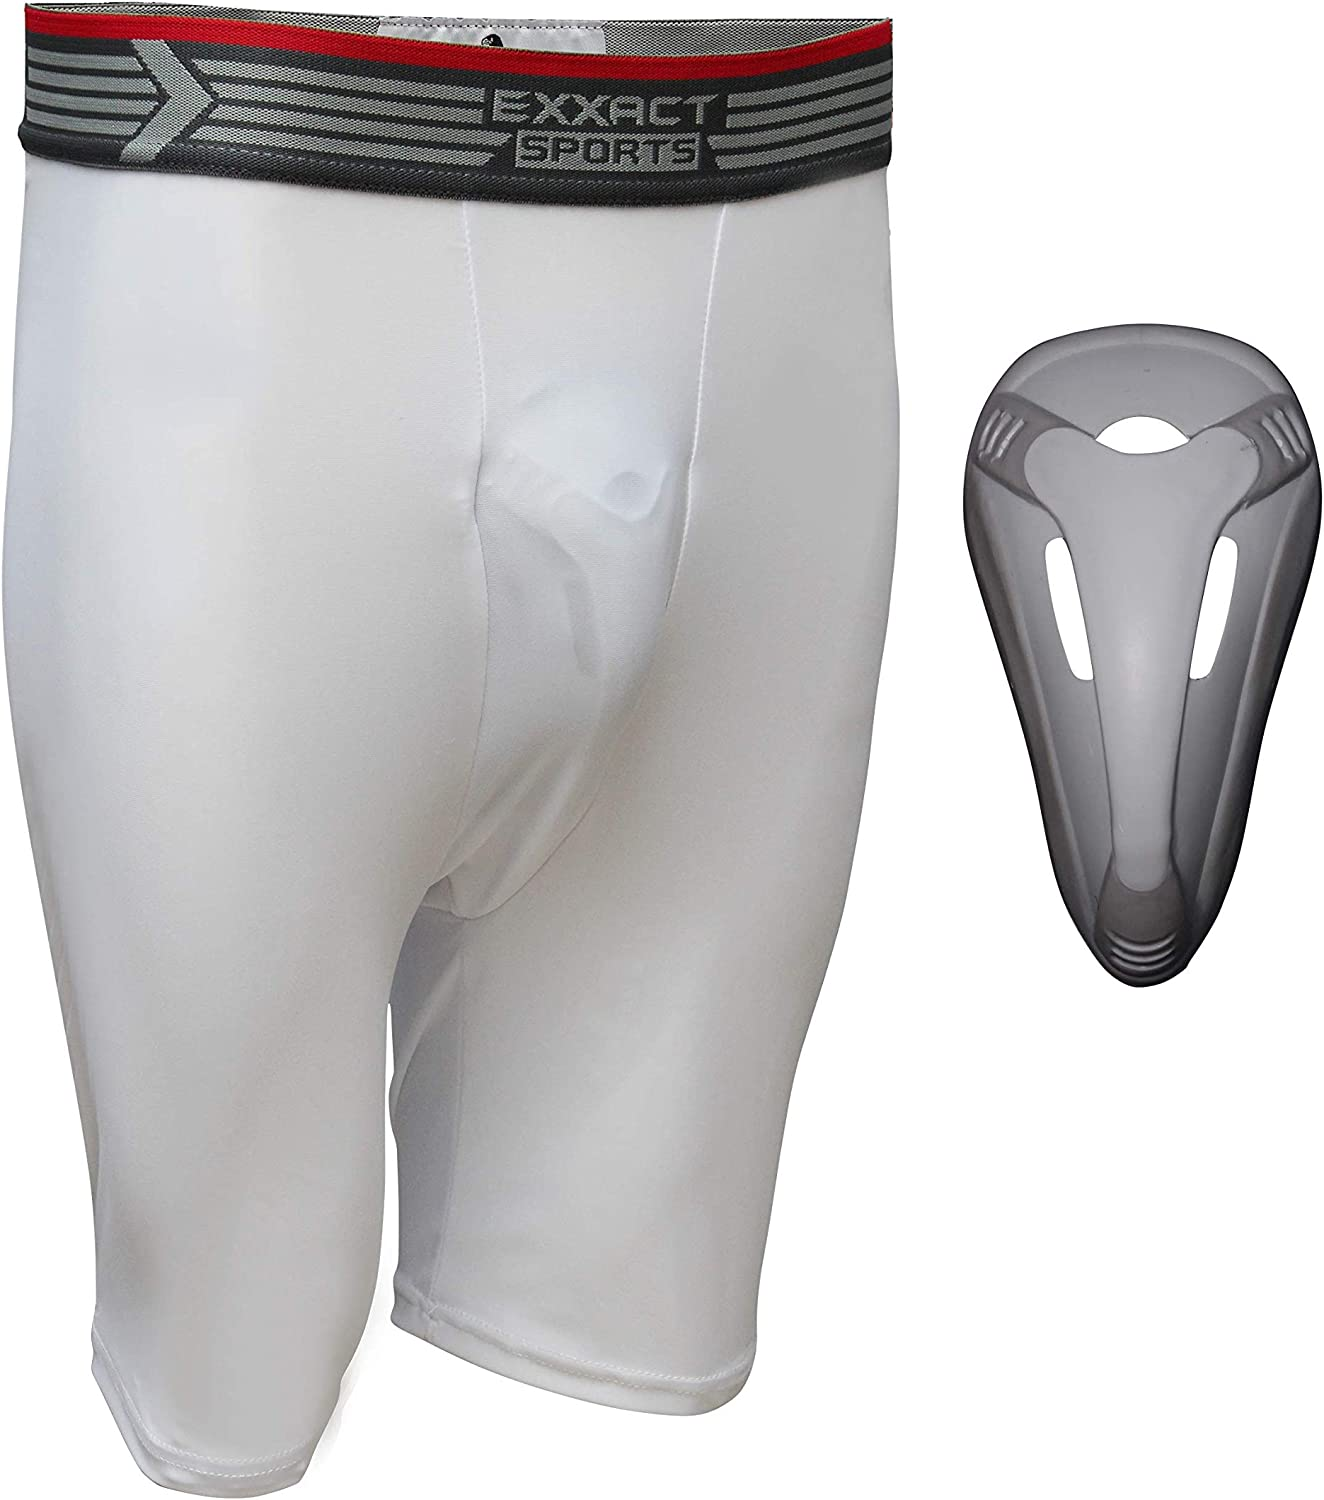 White Adult Large Exxact Sports Compression Shorts Flex Supporter with Hard Cup Included Athletic Cup Protector Safety Support Cup Included Youth and Adult Sizes